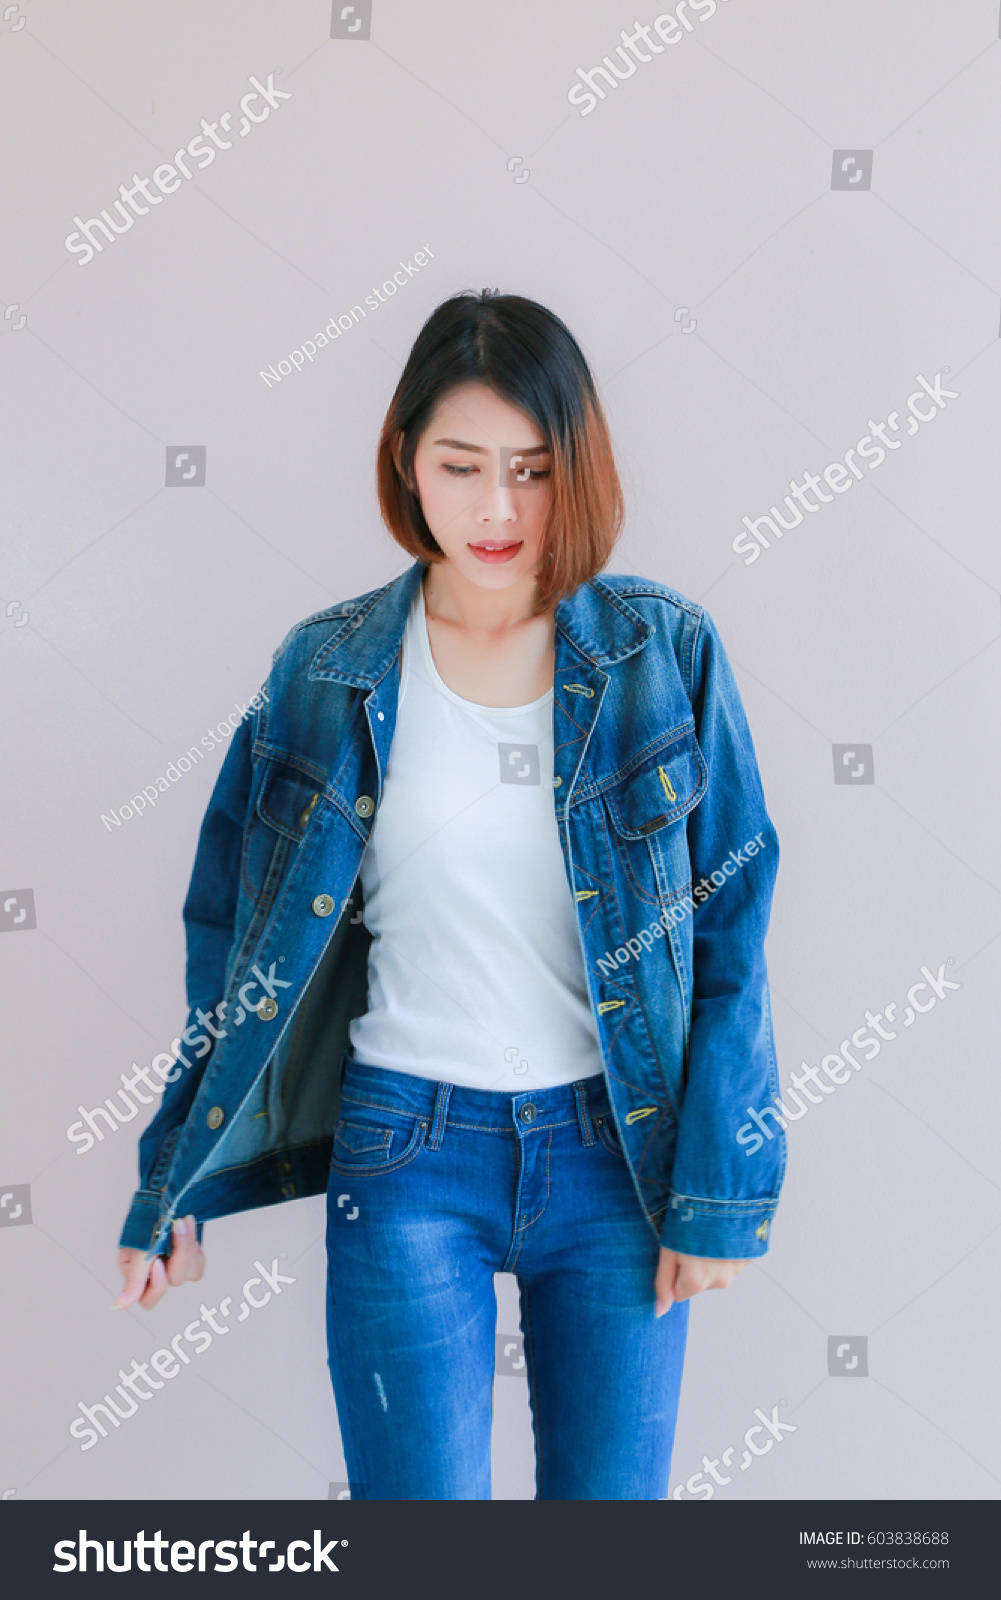 9199ab88c0 Closeup Asian woman casual outfits standing in jeans and blue denim shirt